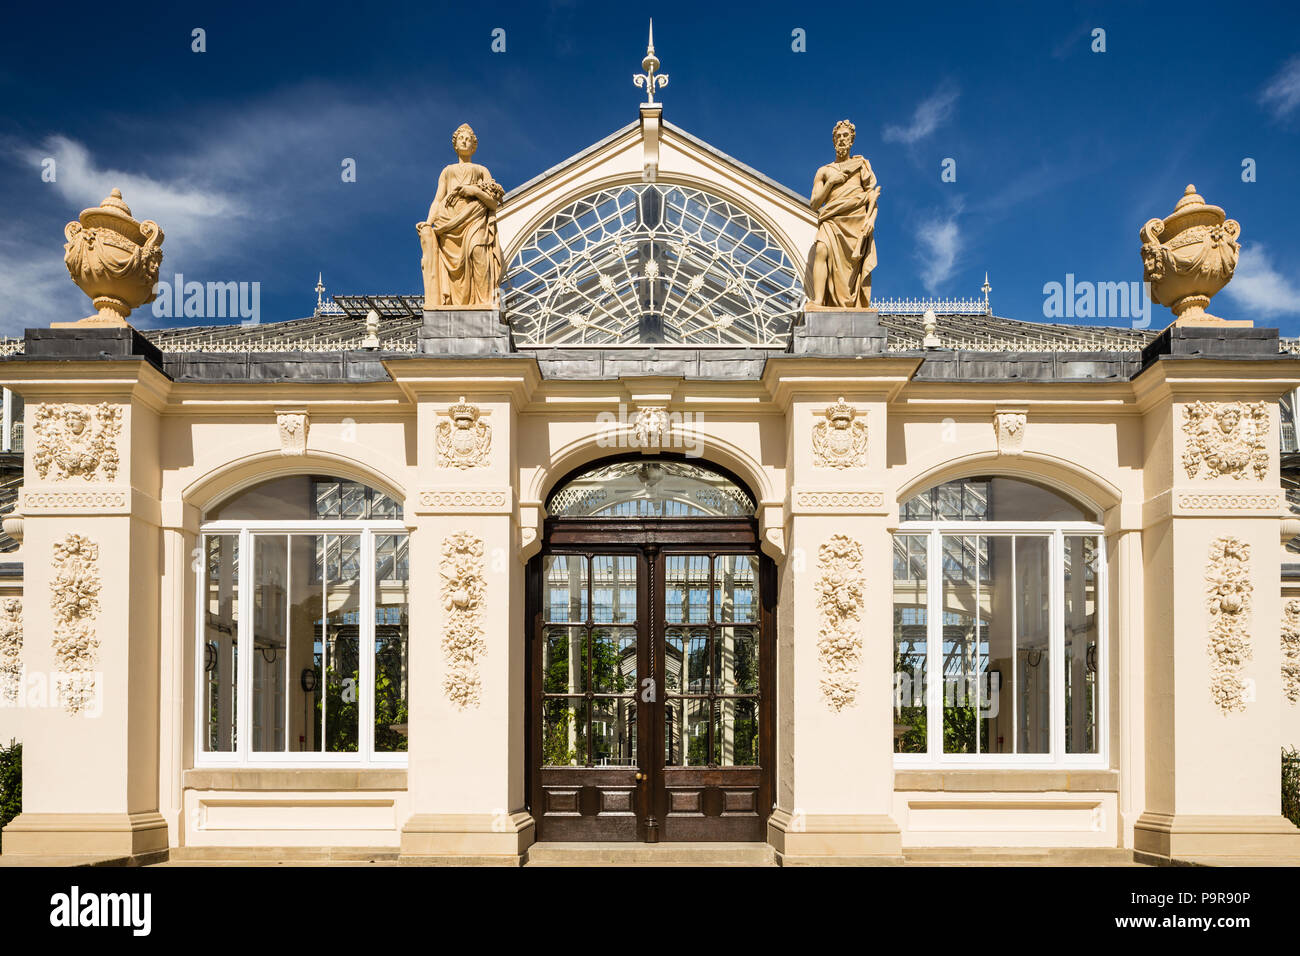 Temperate house at Kew RBG, exterior entrance. - Stock Image